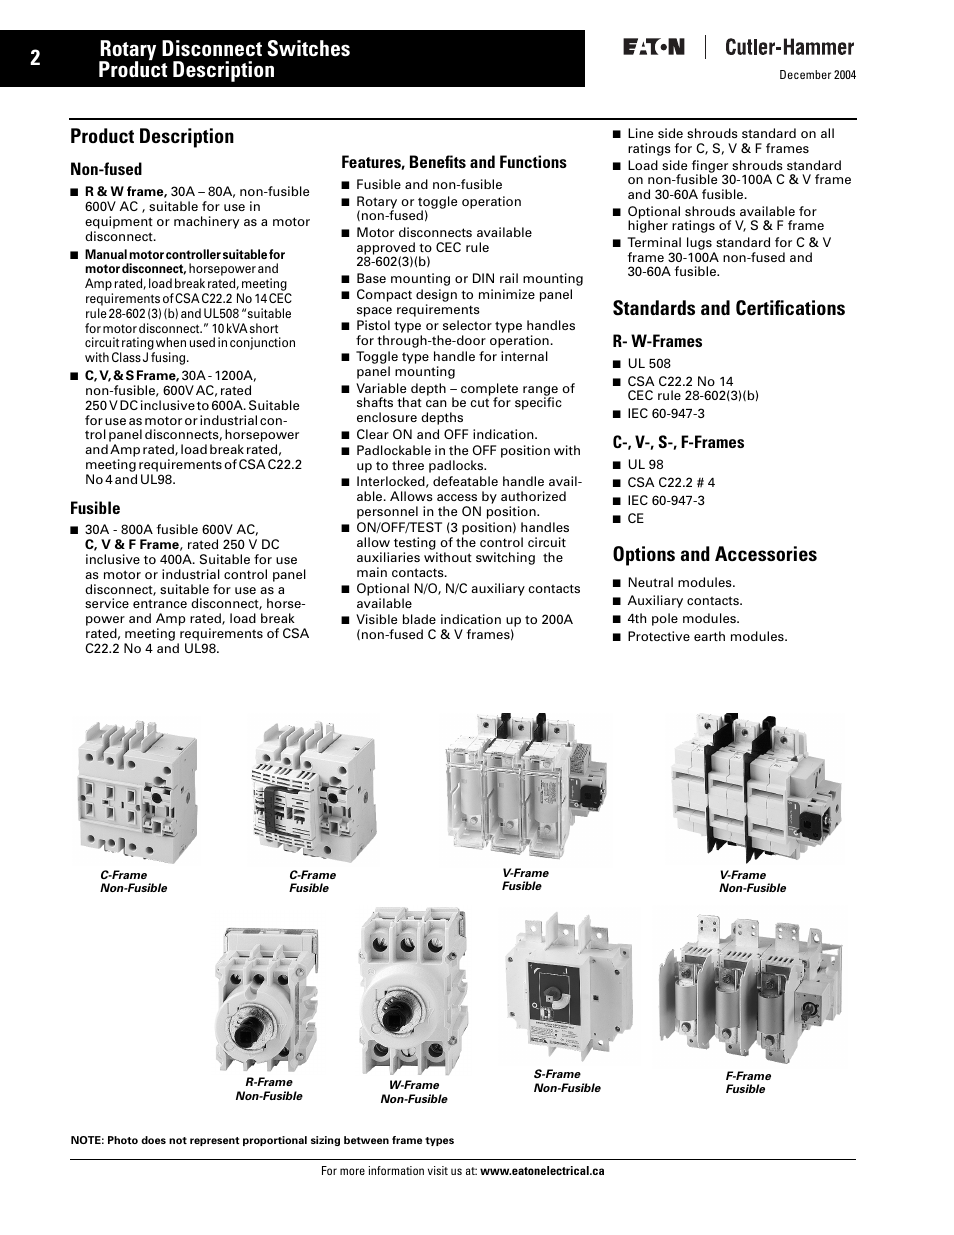 Rotary disconnect switches c362/c363, Product description, Features ...